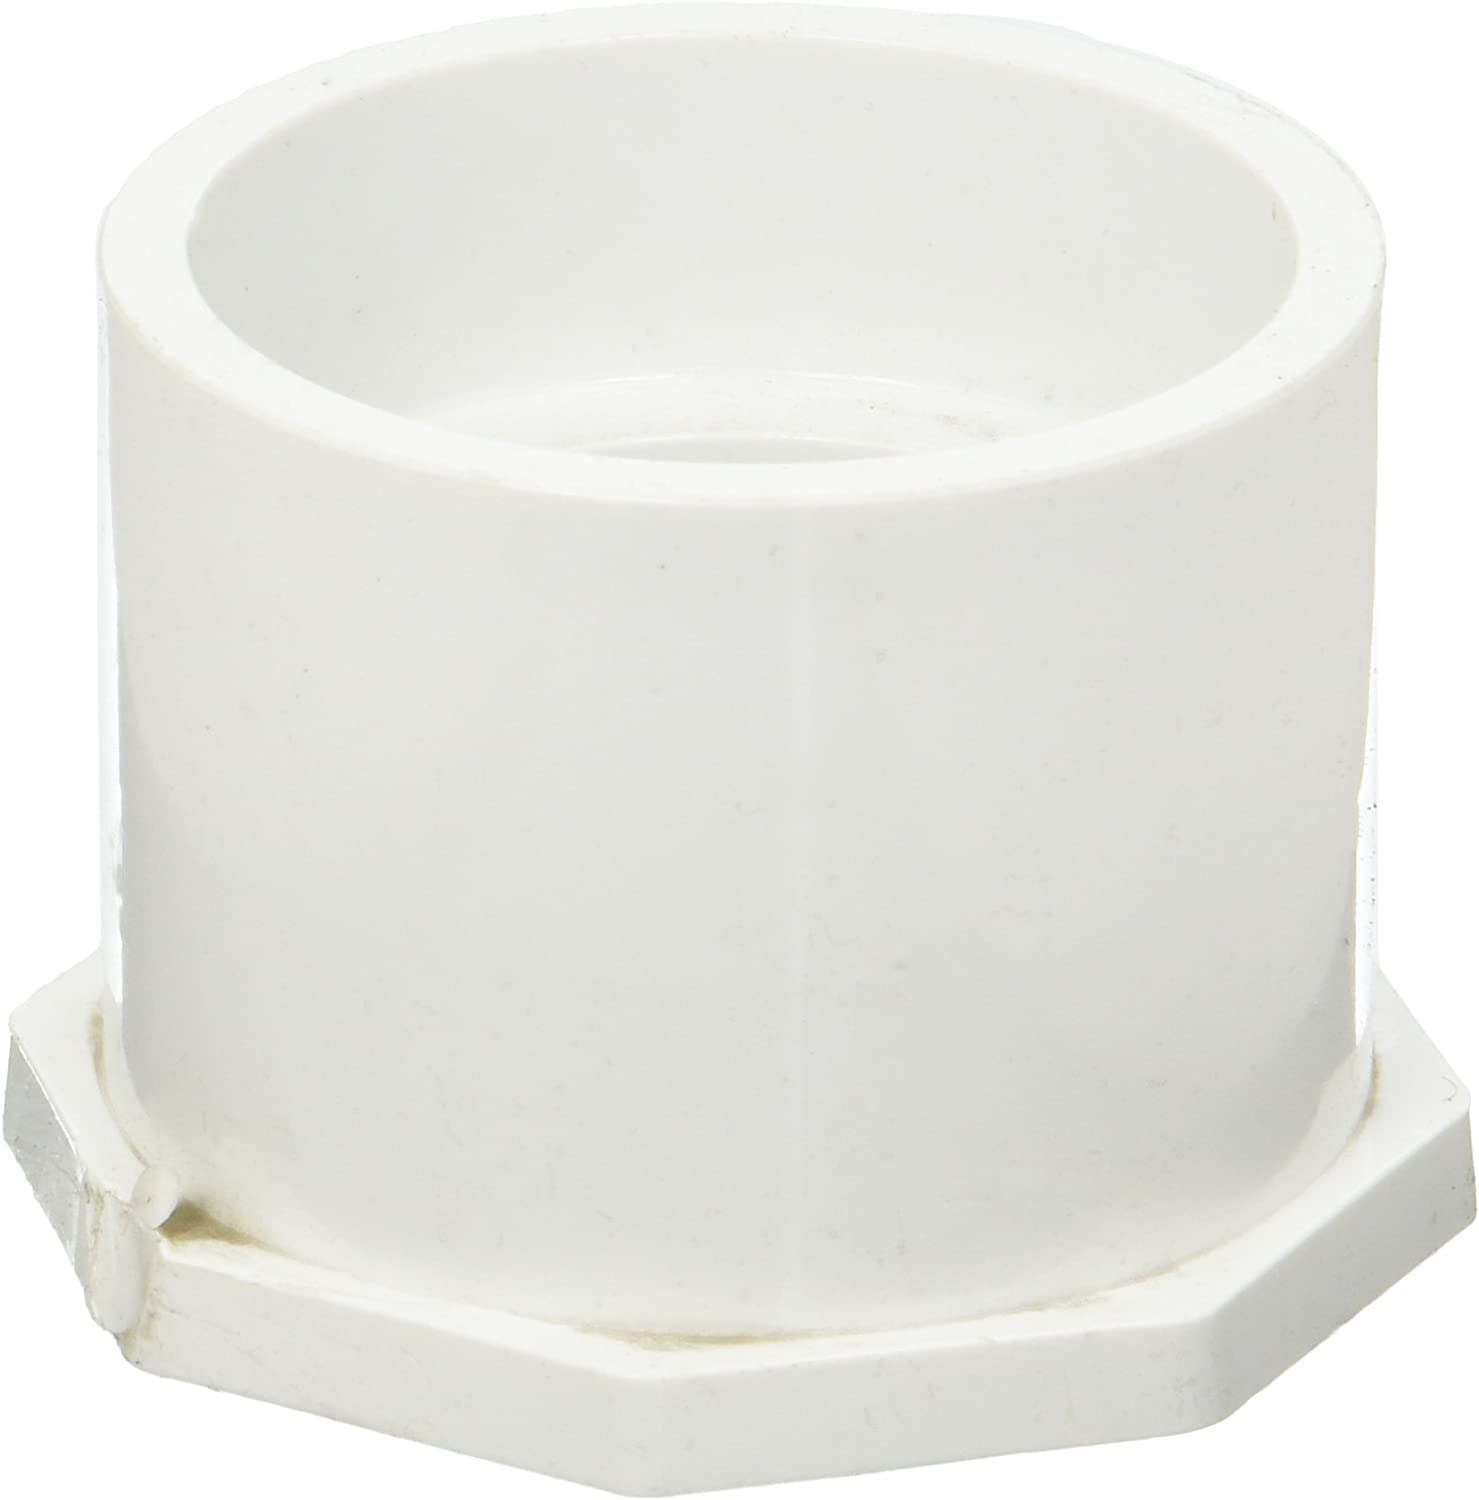 2-1//2 SPG x 1-1//2 Slip GENOVA PRODUCTS 30291 Bushing White